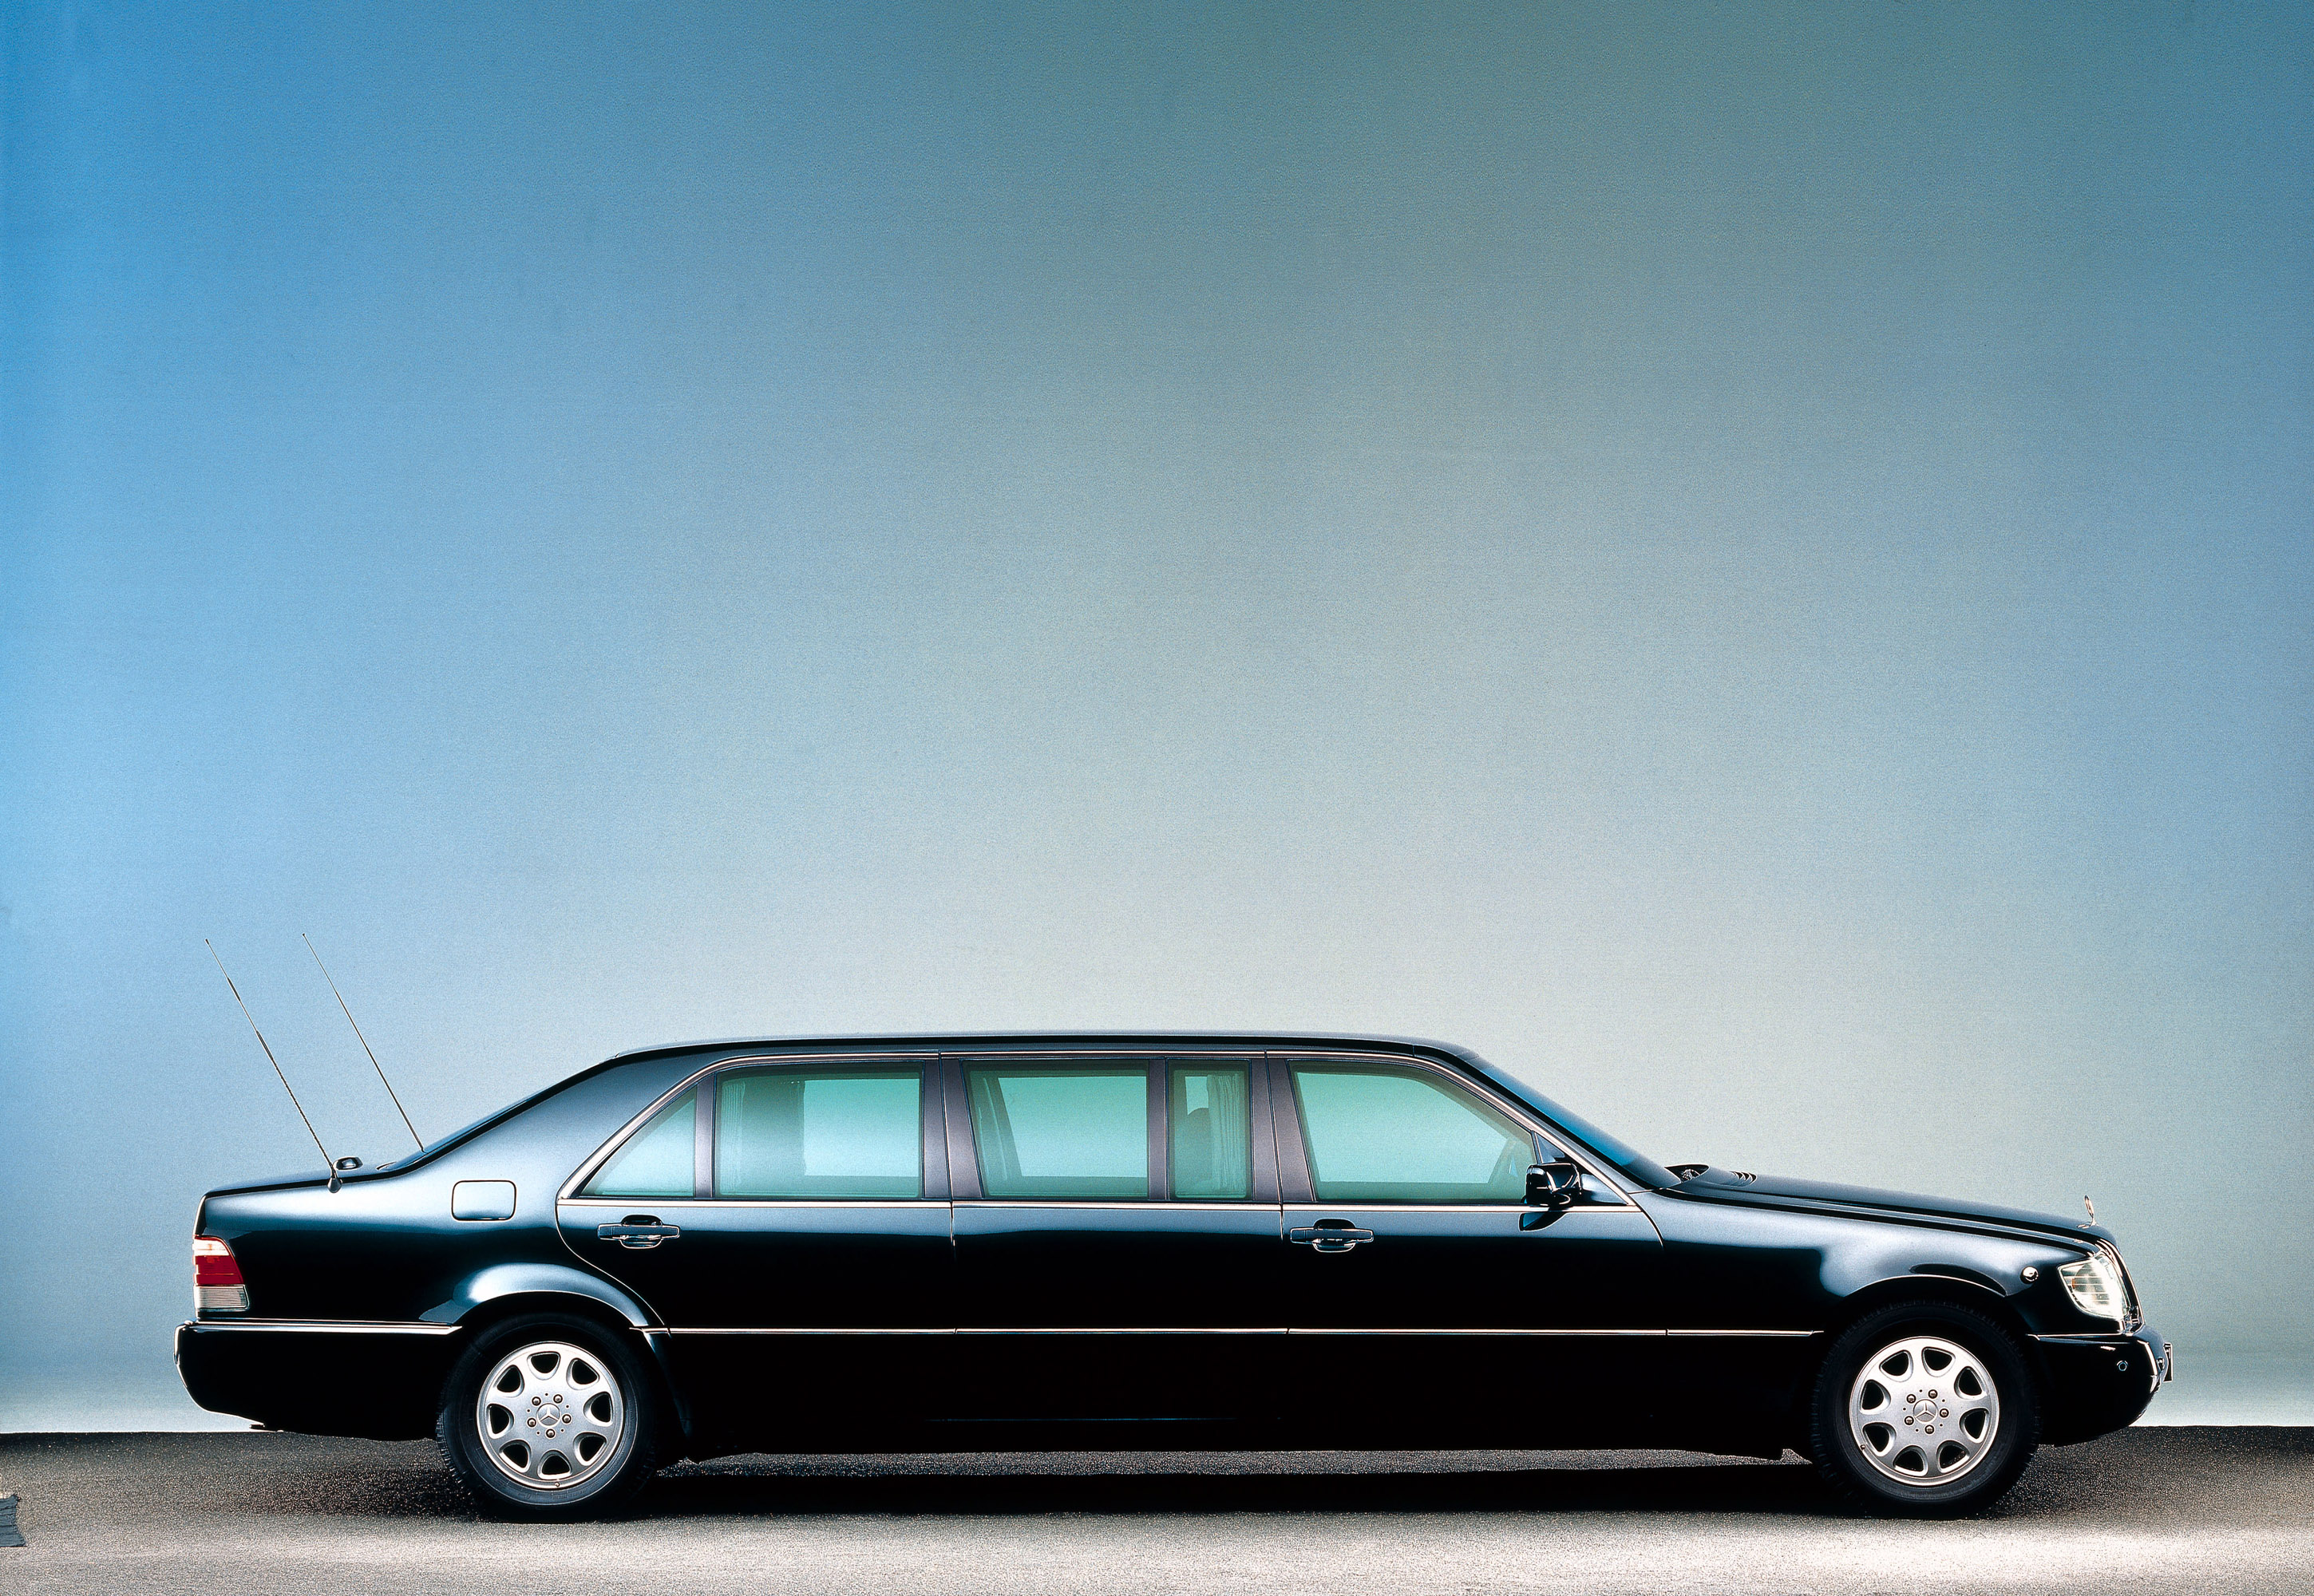 1998 mercedes benz s600 pullman limousine w140 picture 95043 for Mercedes benz pullman